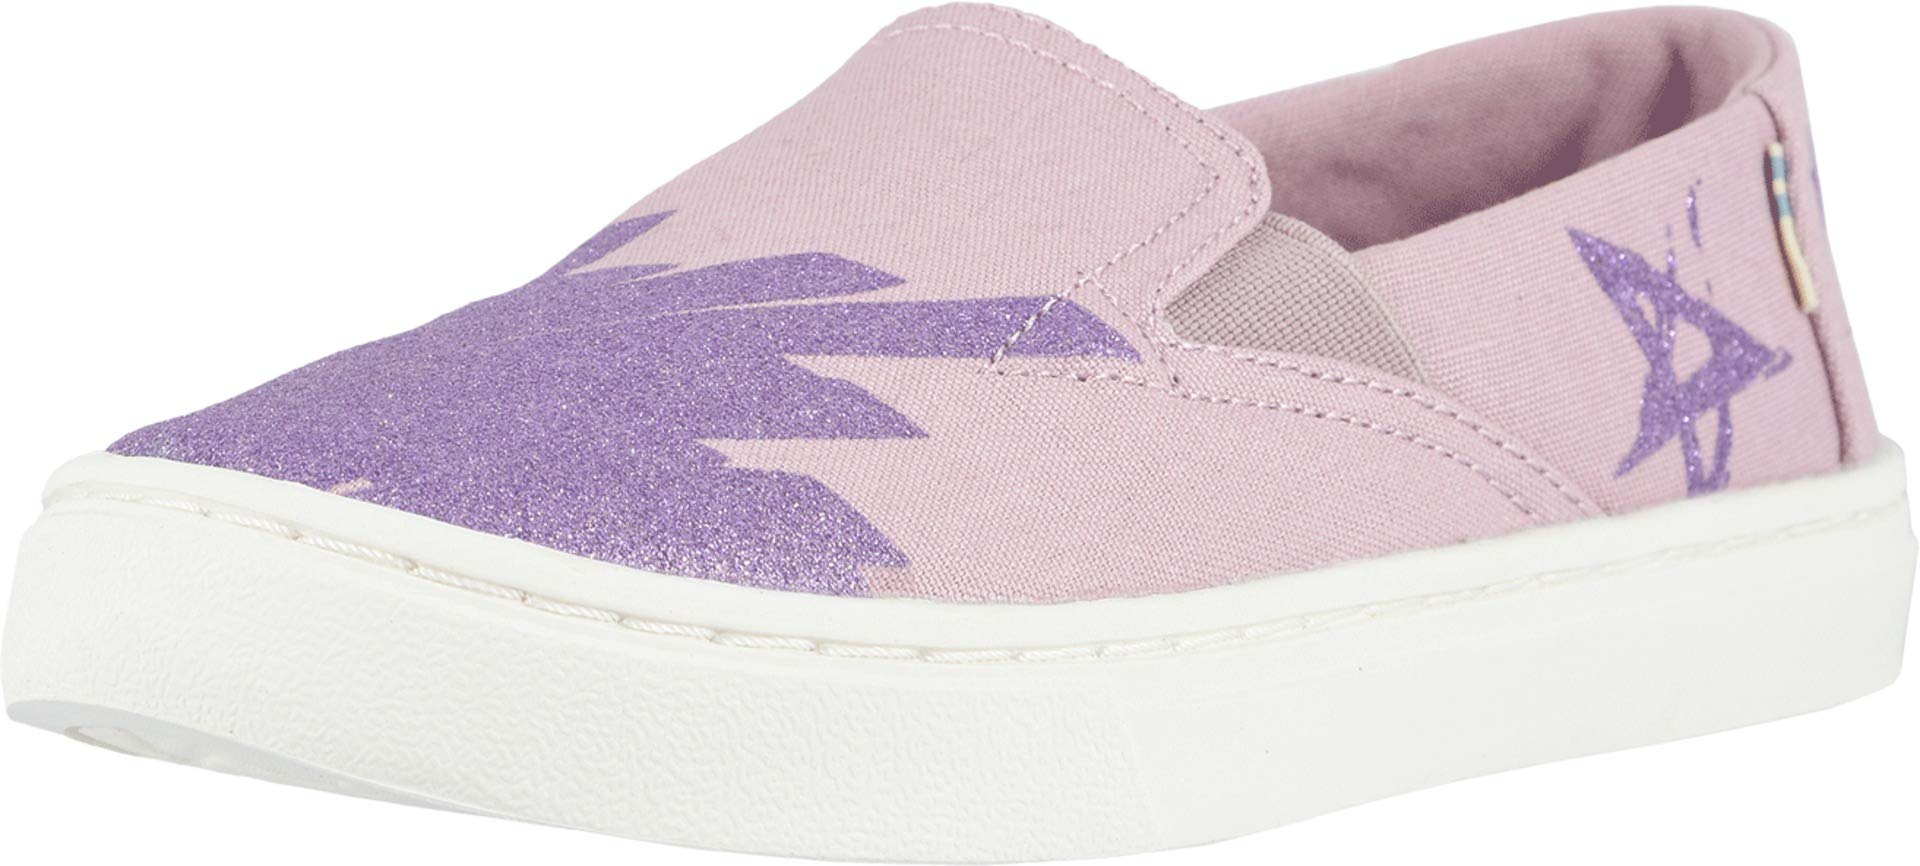 TOMS Youth Luca Slip-On Shoes, Size: 3.5 M US Big Kid, Color: Brnsh Lilac Glt Star